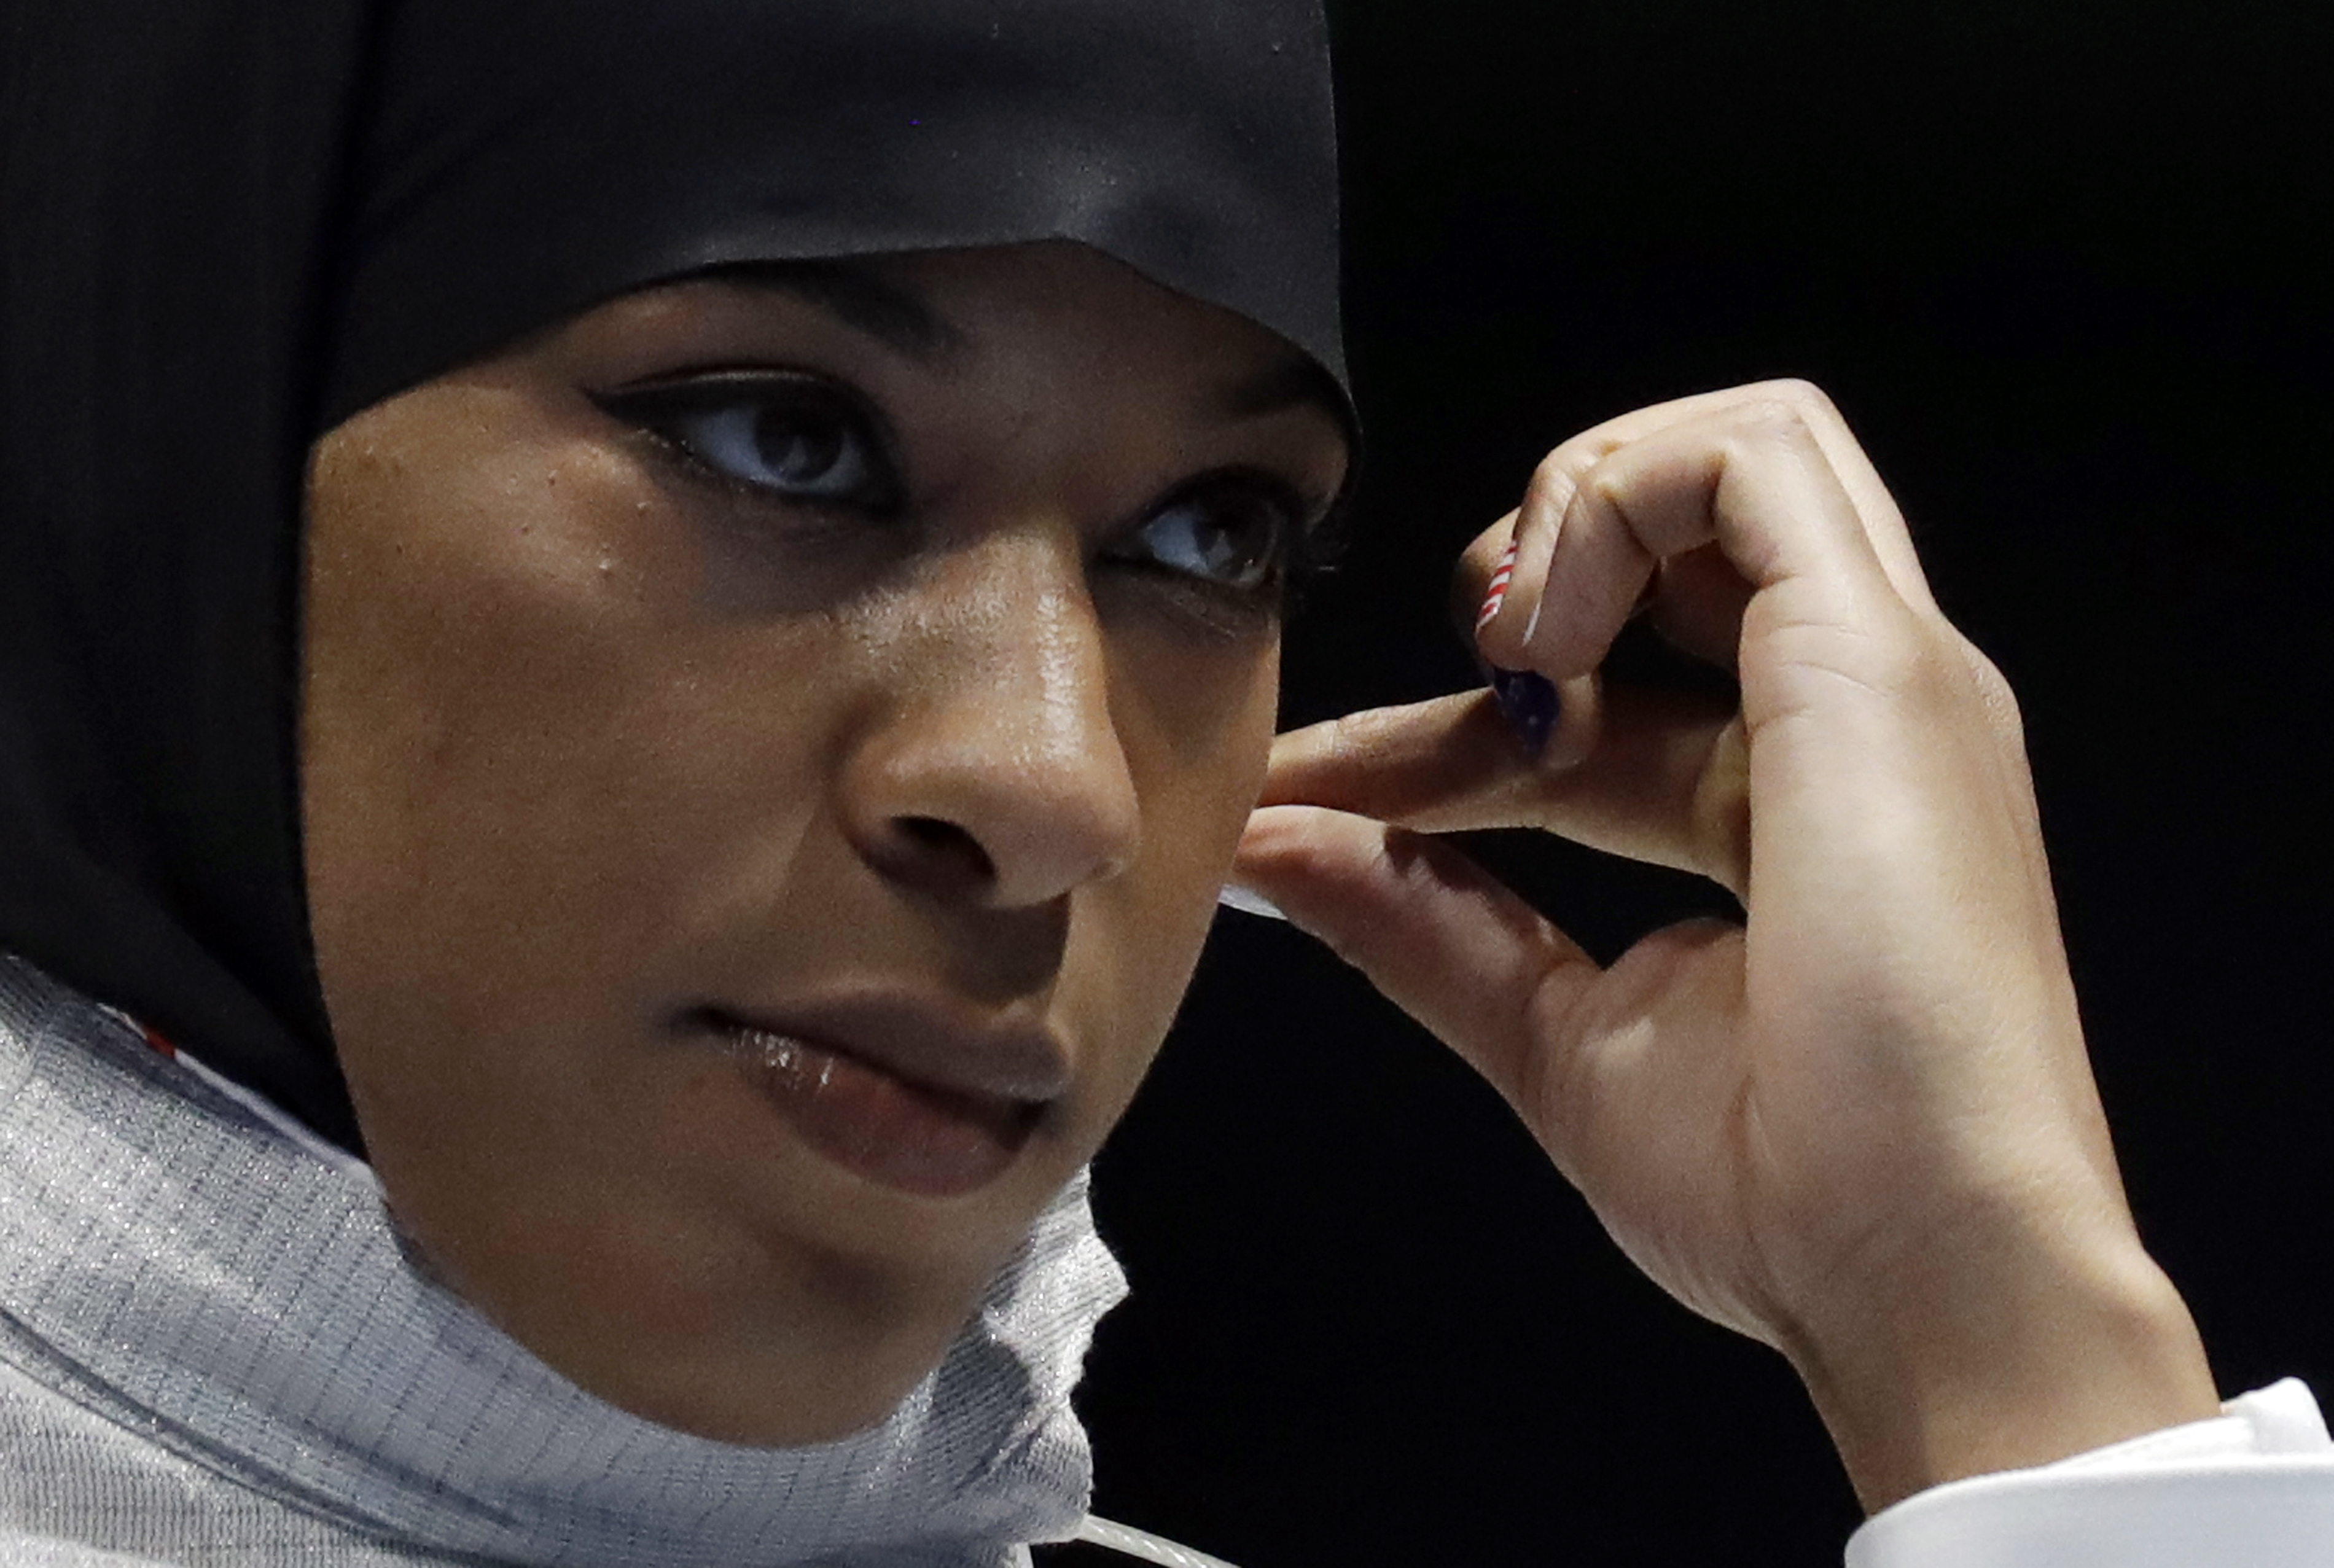 Ibtihaj Muhammad od the United States adjusts her hijab prior to competing with Olena Kravatska of Ukraine in the women's individual saber fencing event at the 2016 Summer Olympics in Rio de Janeiro, Brazil, Monday, Aug. 8, 2016. (AP Photo/Andrew Medichin